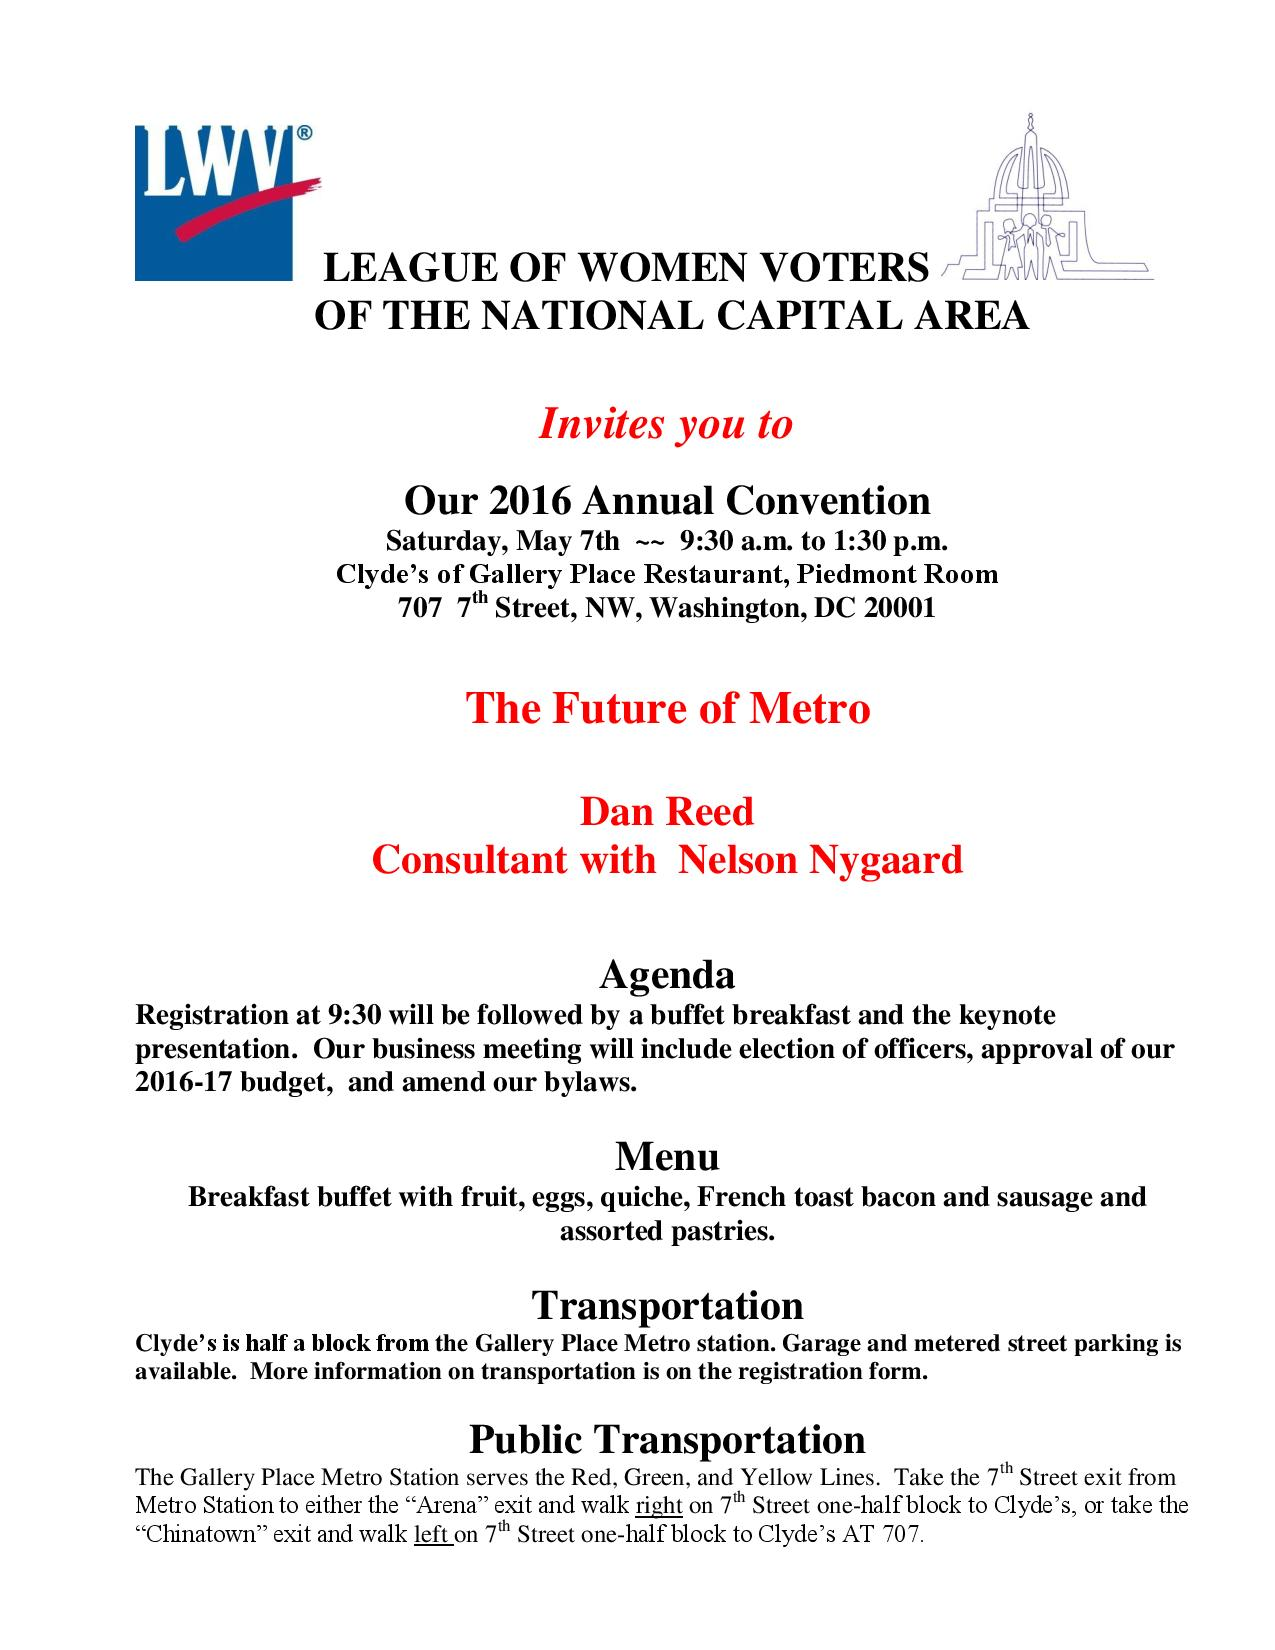 2016lwvncaconventionregistration1.jpg